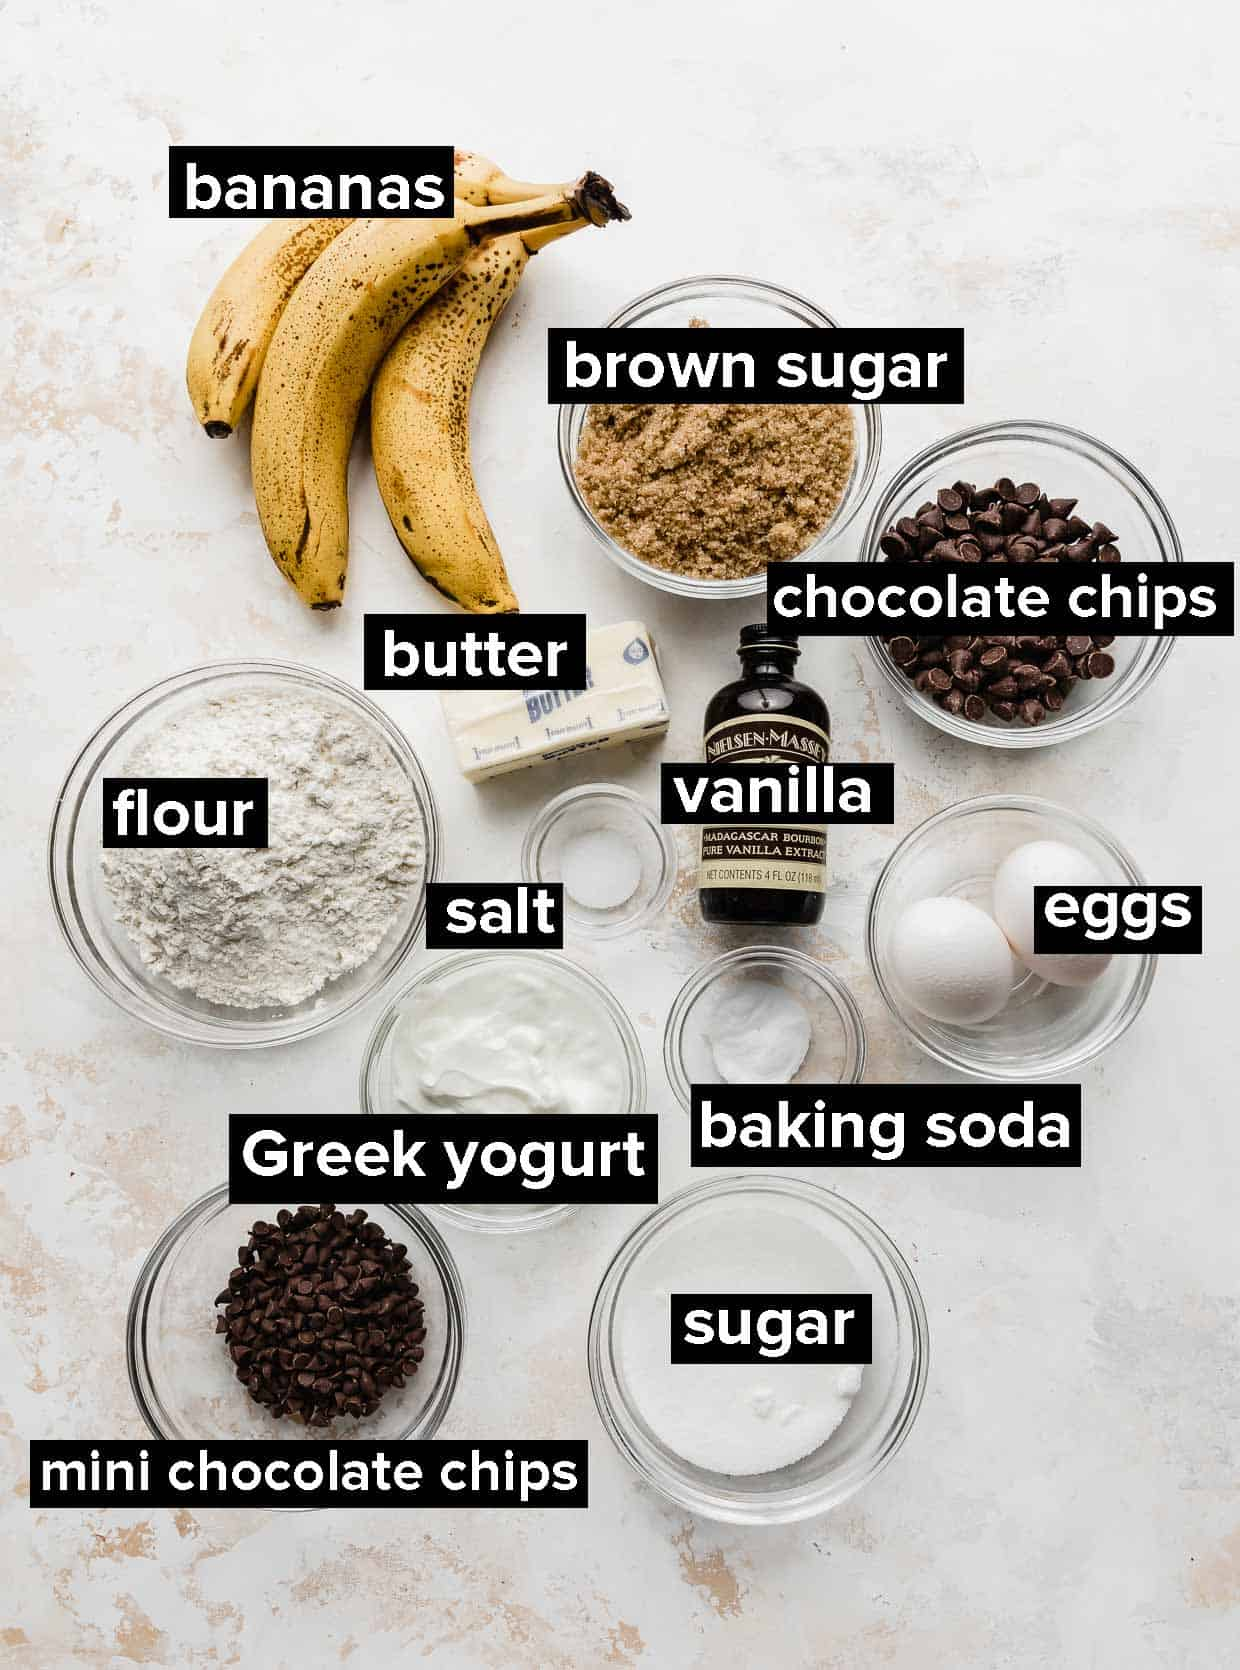 Ingredients used to make chocolate chip banana bread spread out on a white table.